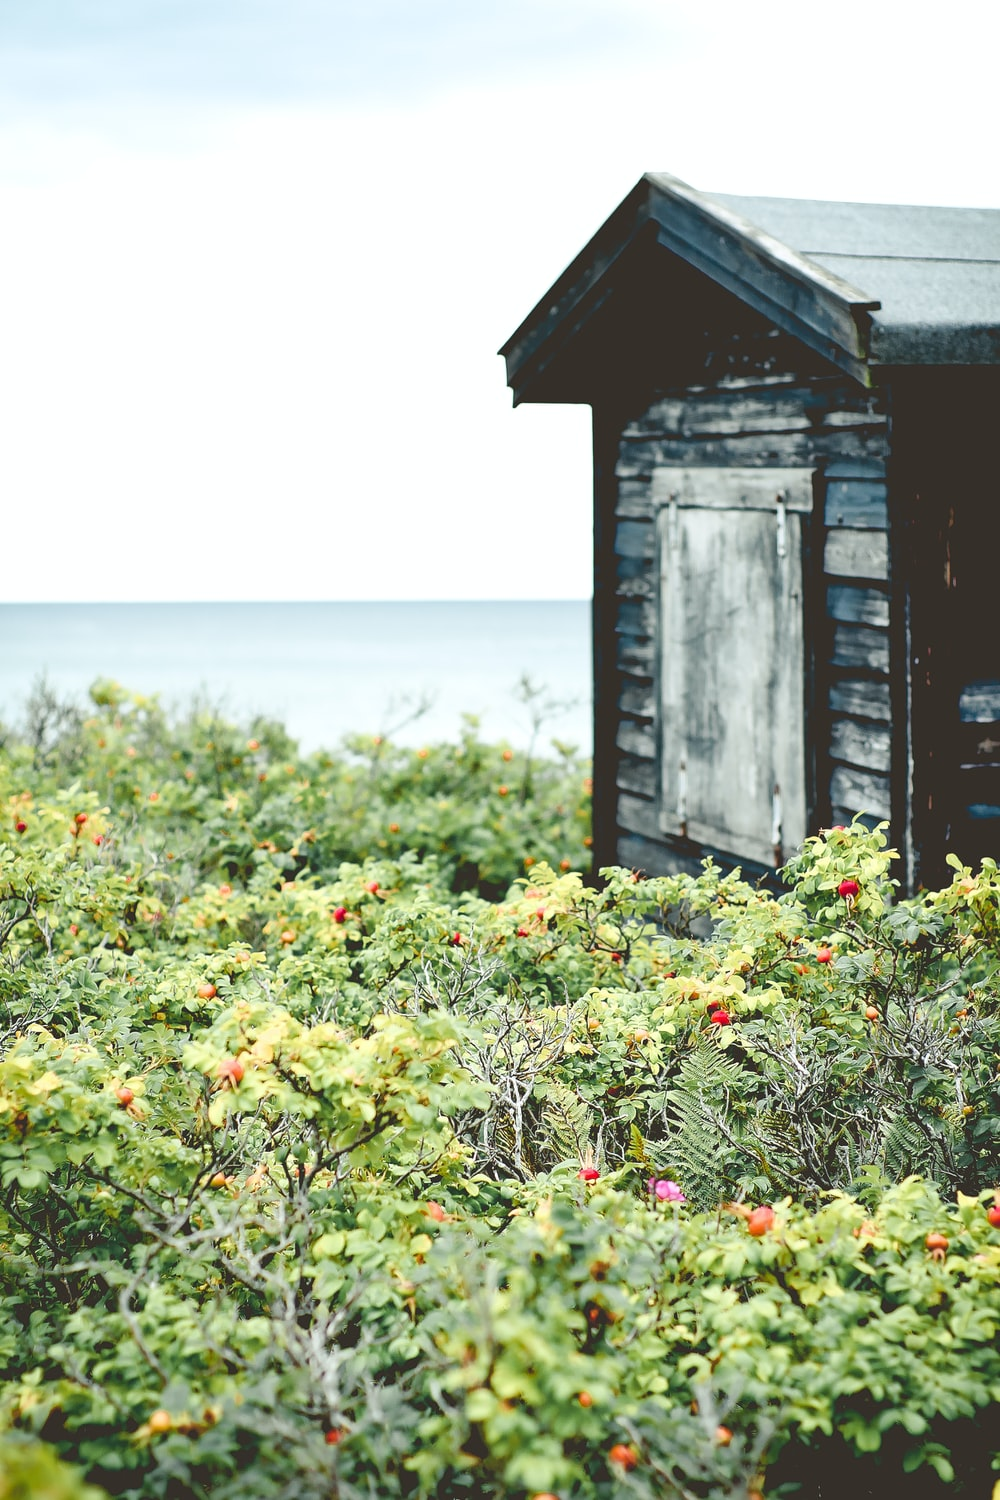 shallow focus photography of green plants with flowers near a wooden house